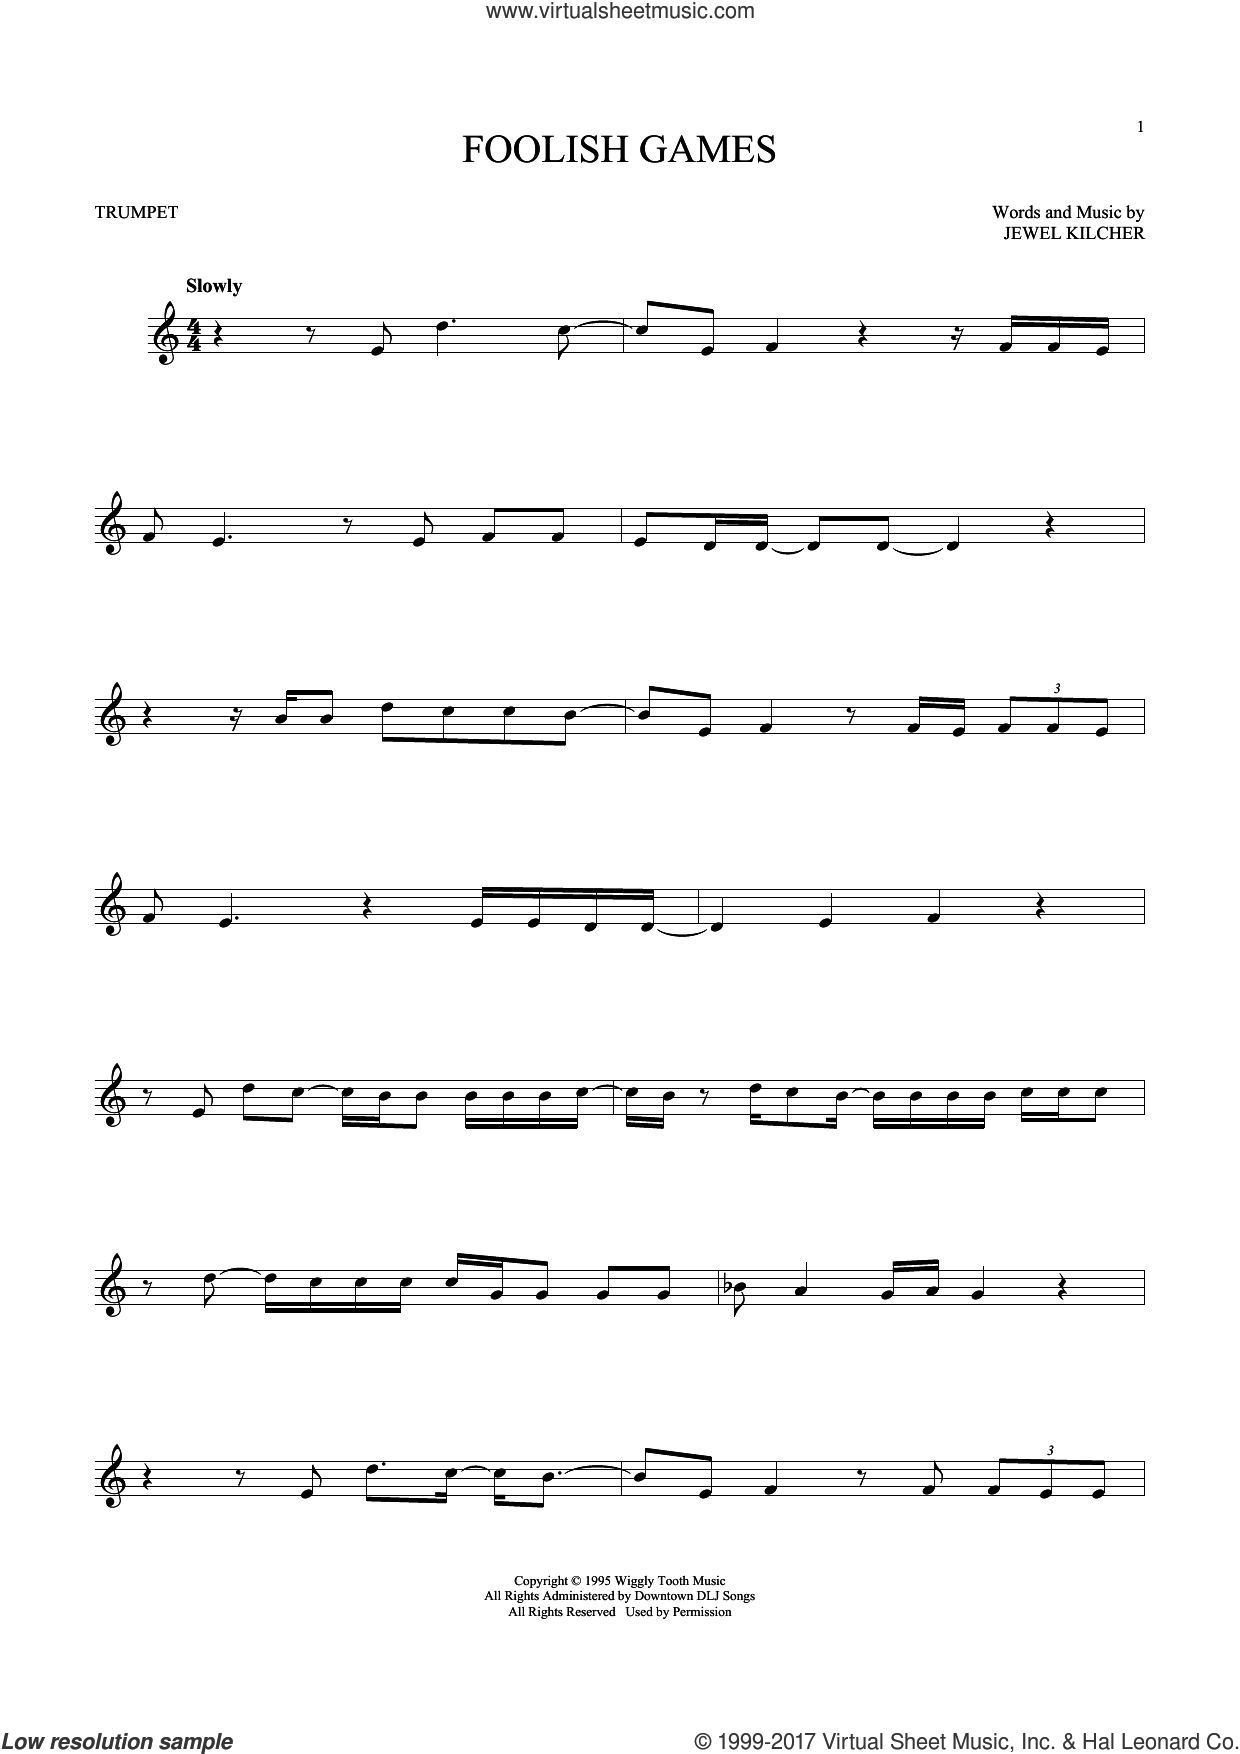 Foolish Games sheet music for trumpet solo by Jewel and Jewel Kilcher, intermediate skill level